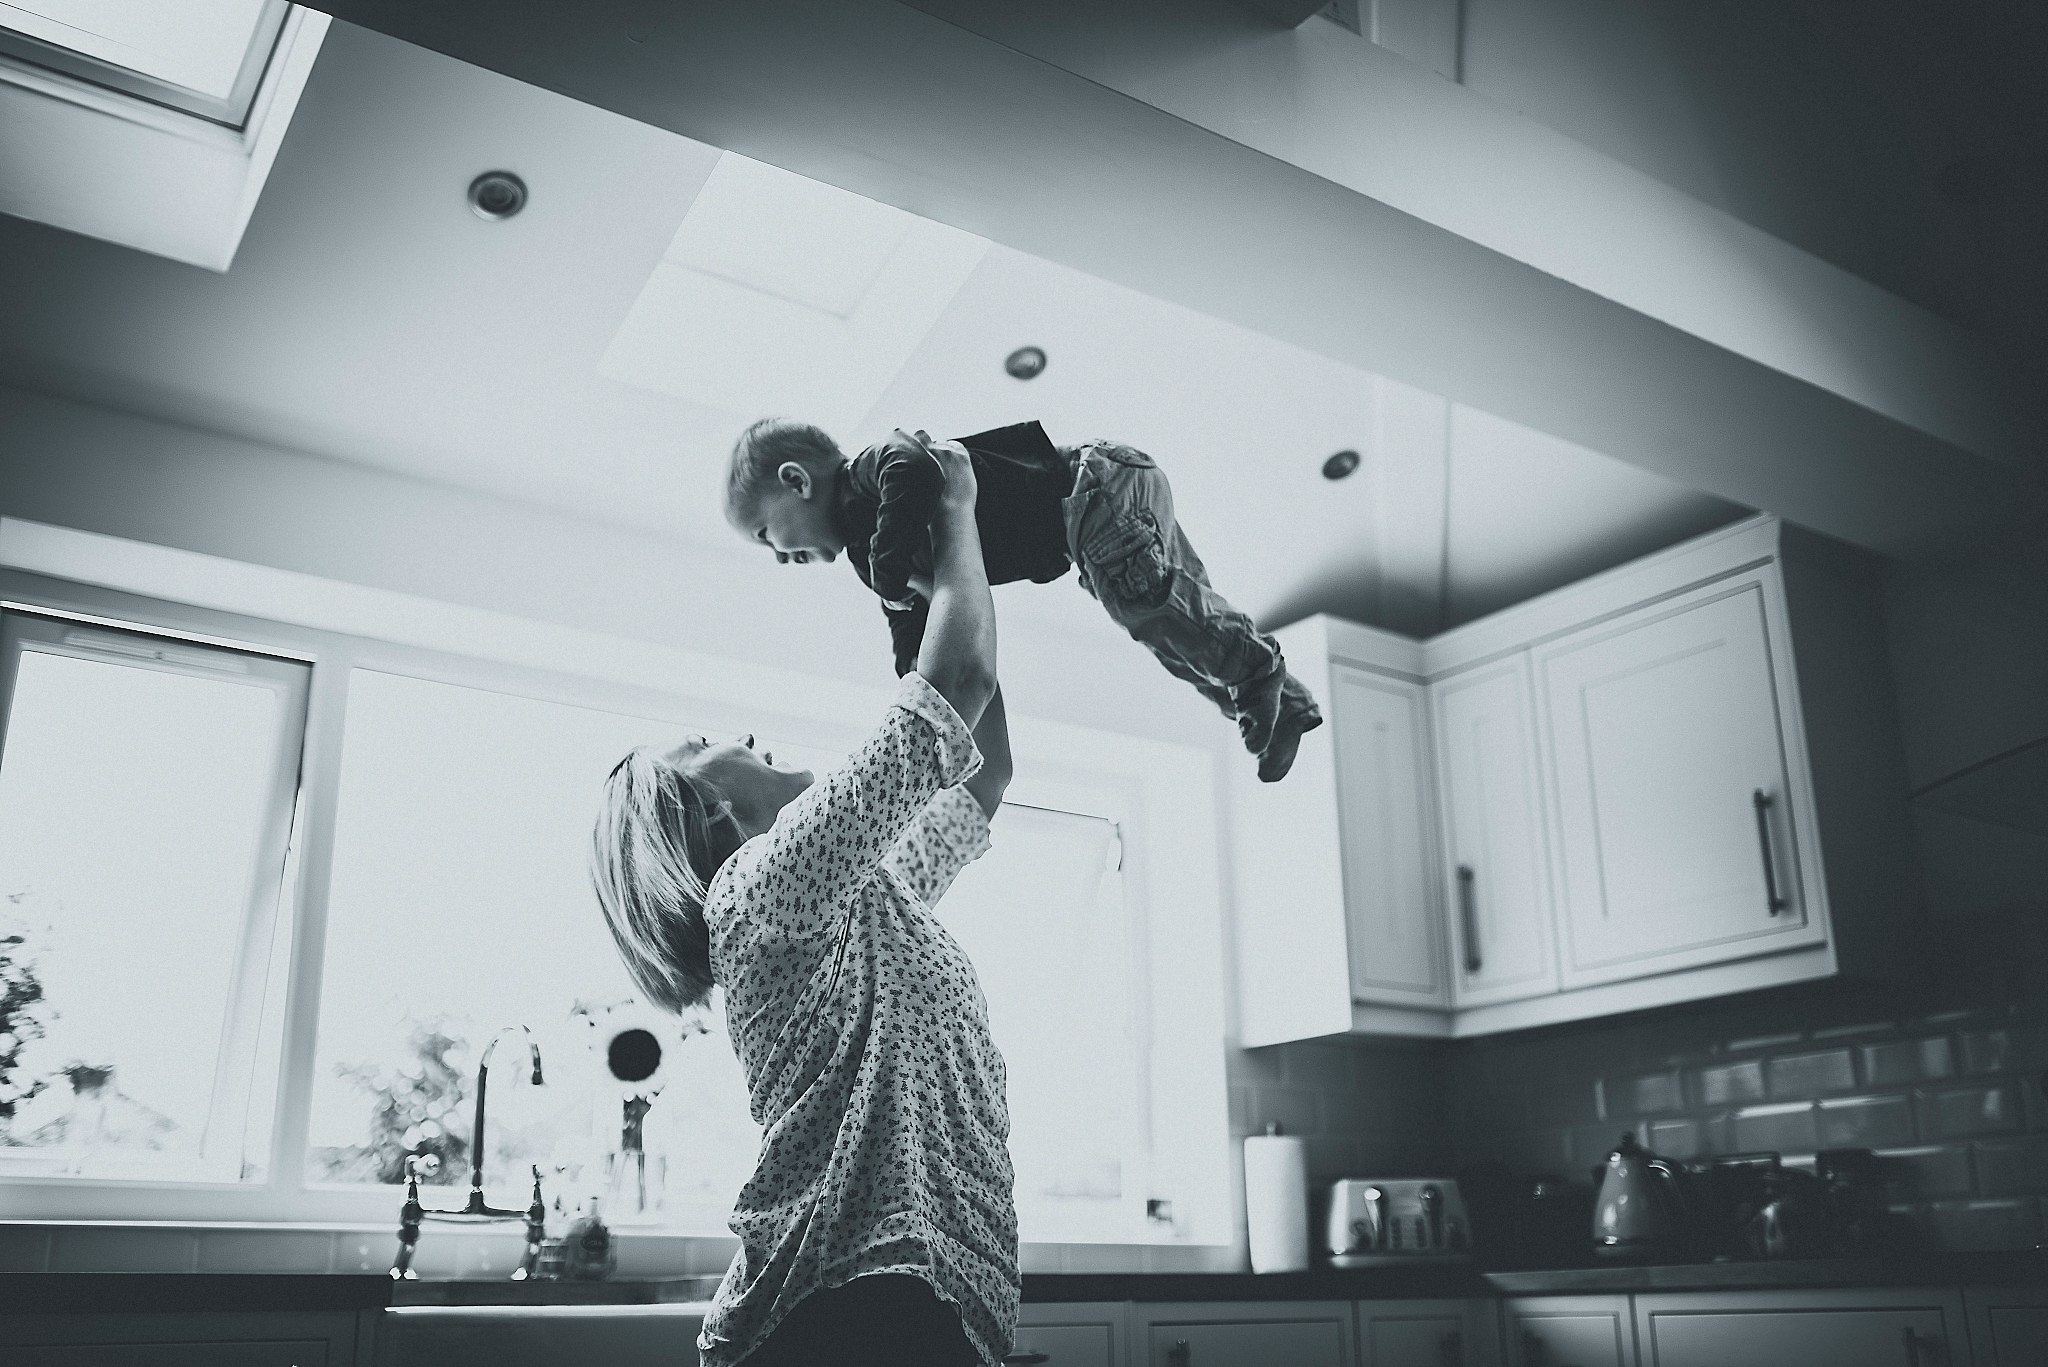 Mum lifting son up at a Cheshire Lifestyle Family Photography Session